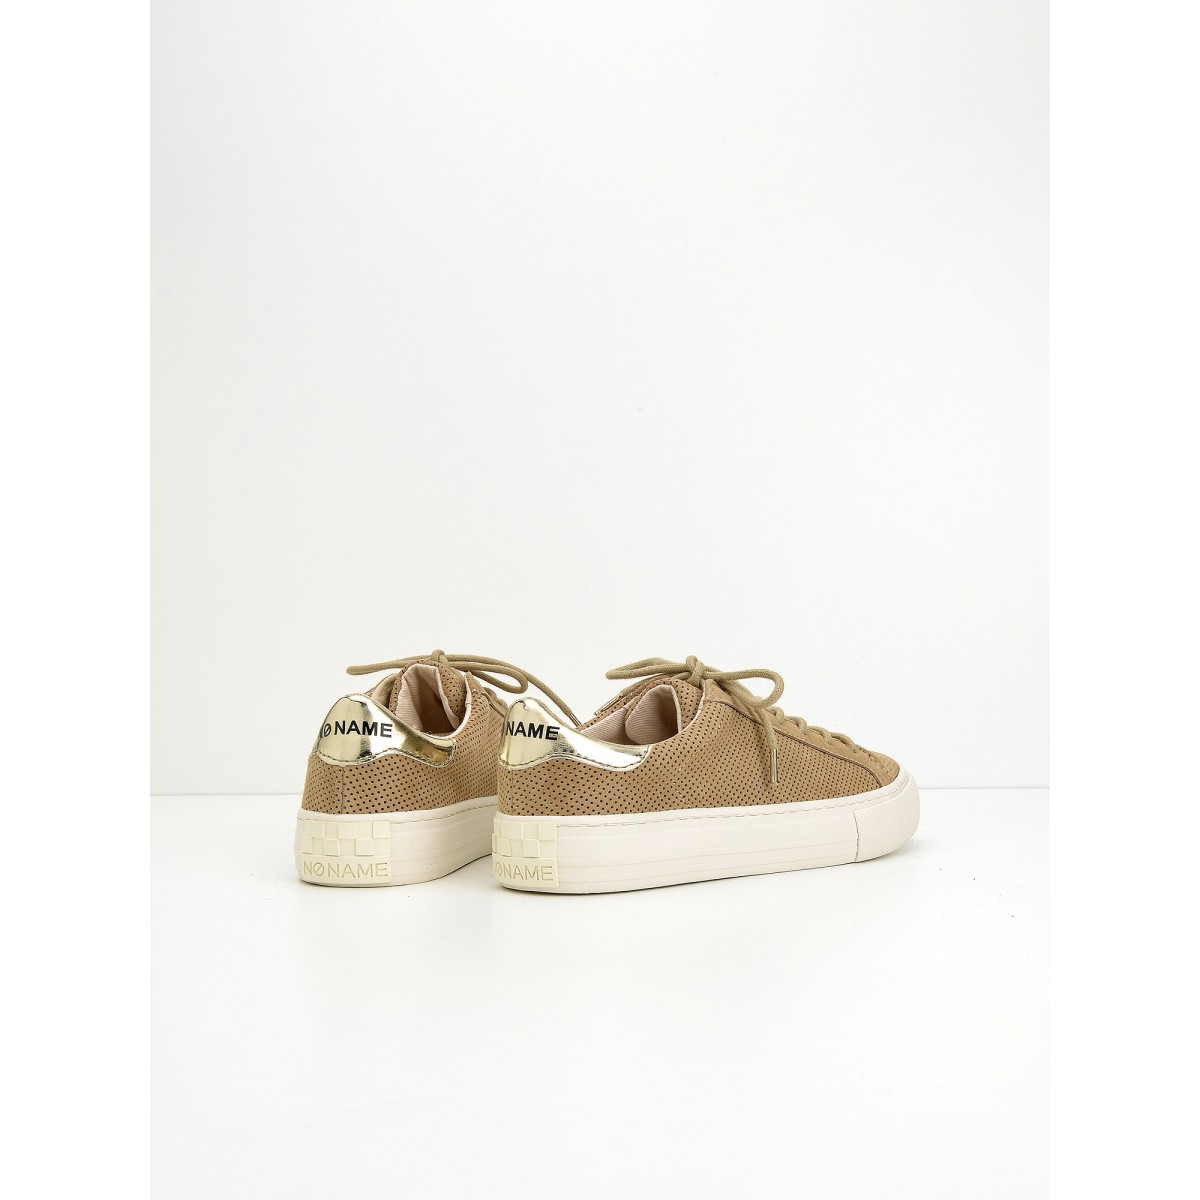 No Name Arcade Sneaker - Punch Goat Suede - Sable